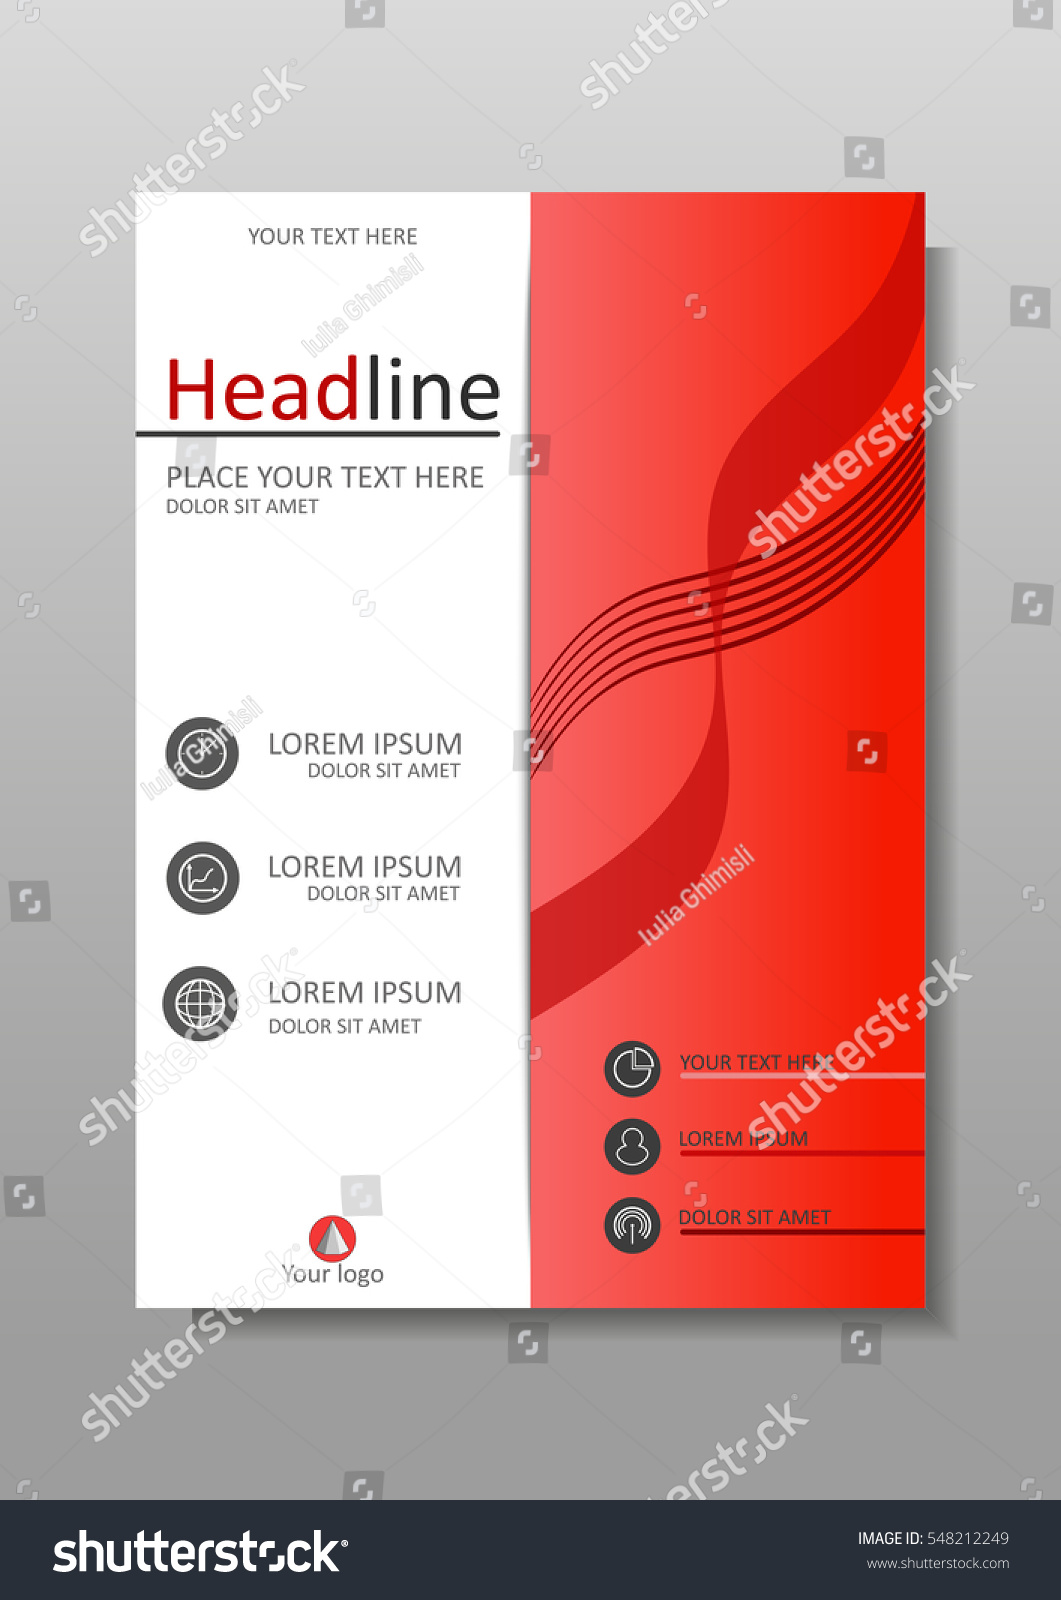 Business Book Cover Design Template : Red a business book cover design stock vector